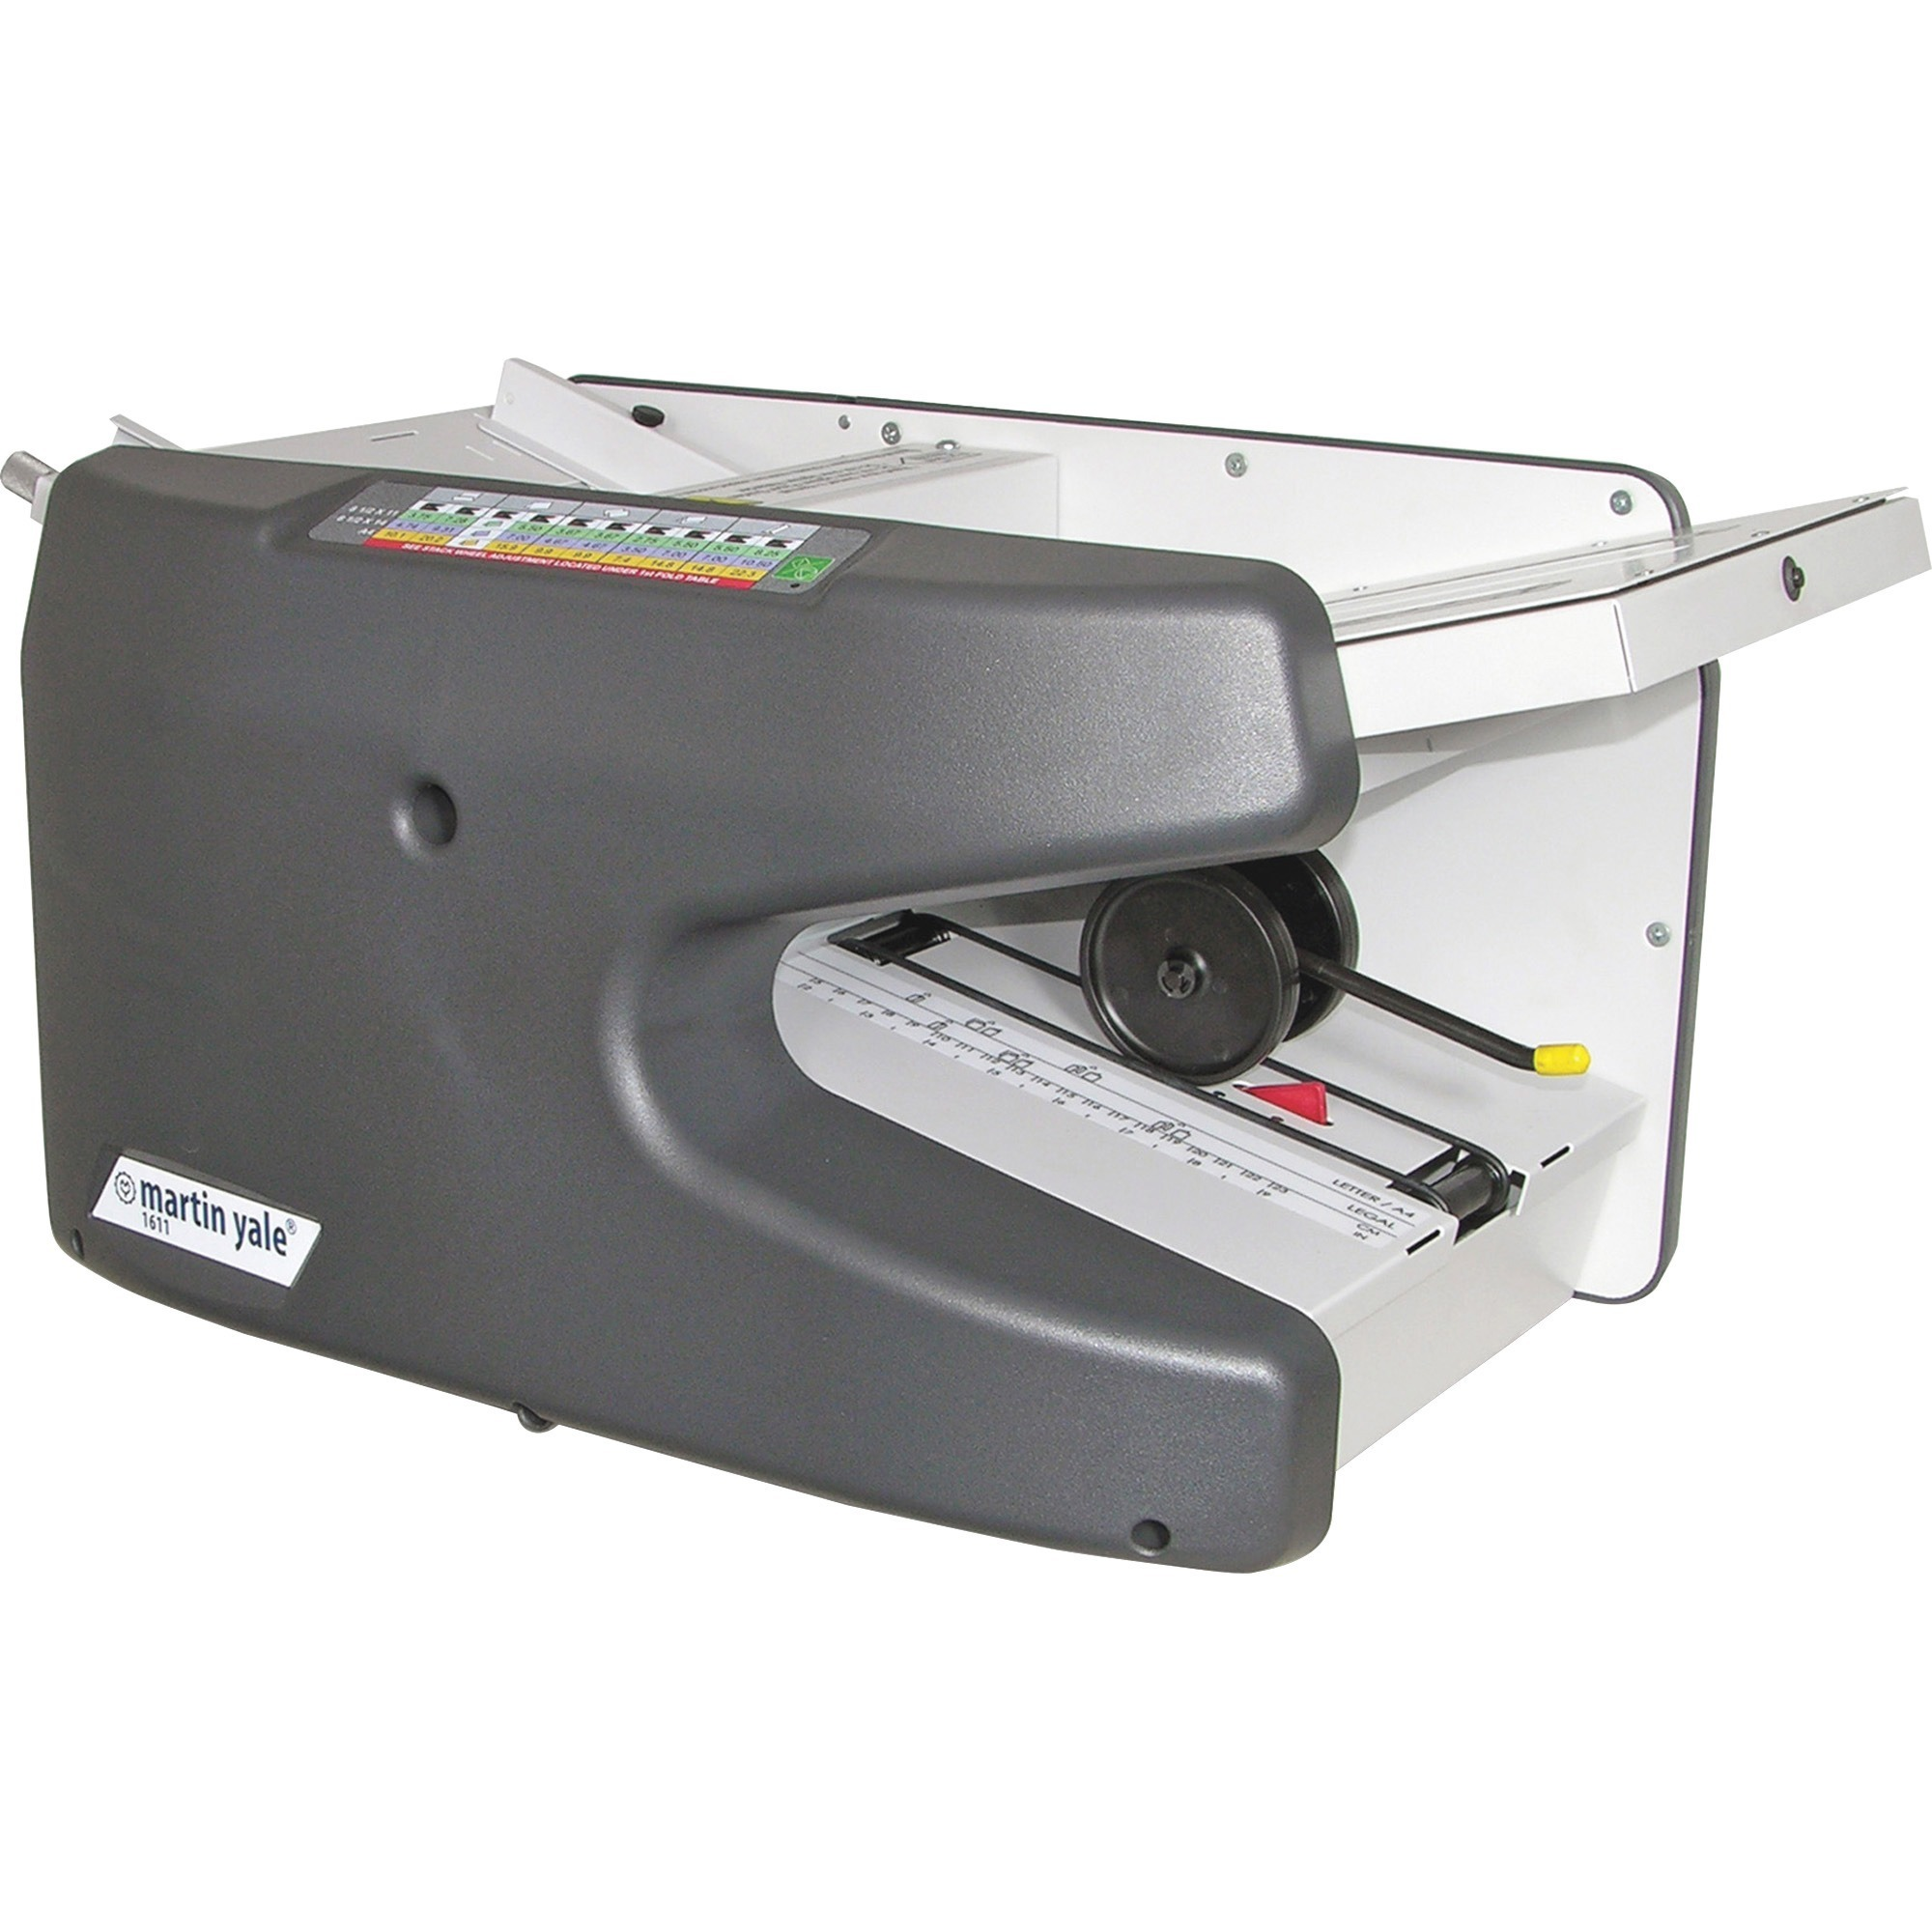 Martin Yale, PRE1611, Premier 1611 Ease-Of-Use Autofolder, 1 Each, Charcoal